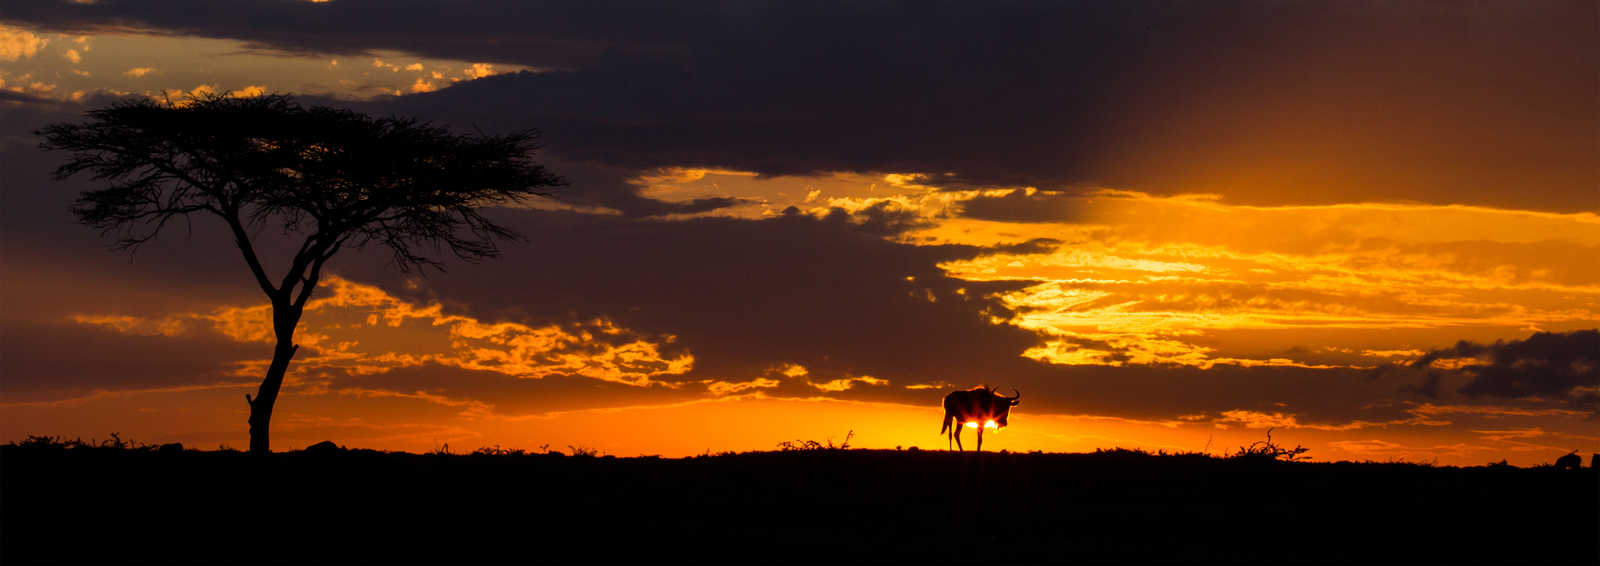 Wildbeast sunset, Masai Mara - Copyright Paul Goldstein